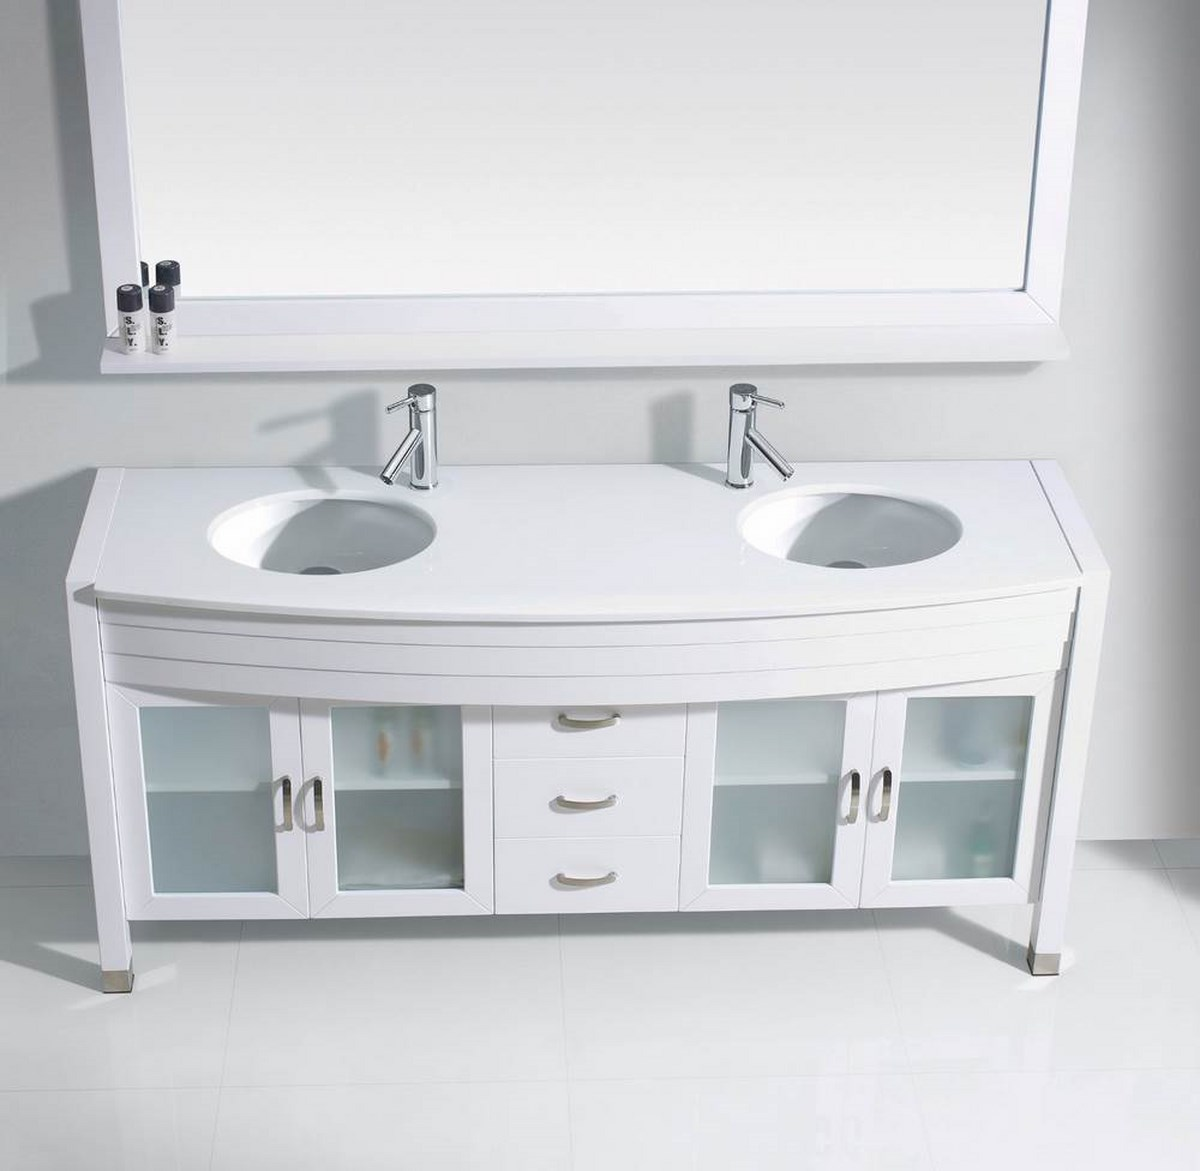 Vanity Counter Set : Bathroom vanities double sink home decor